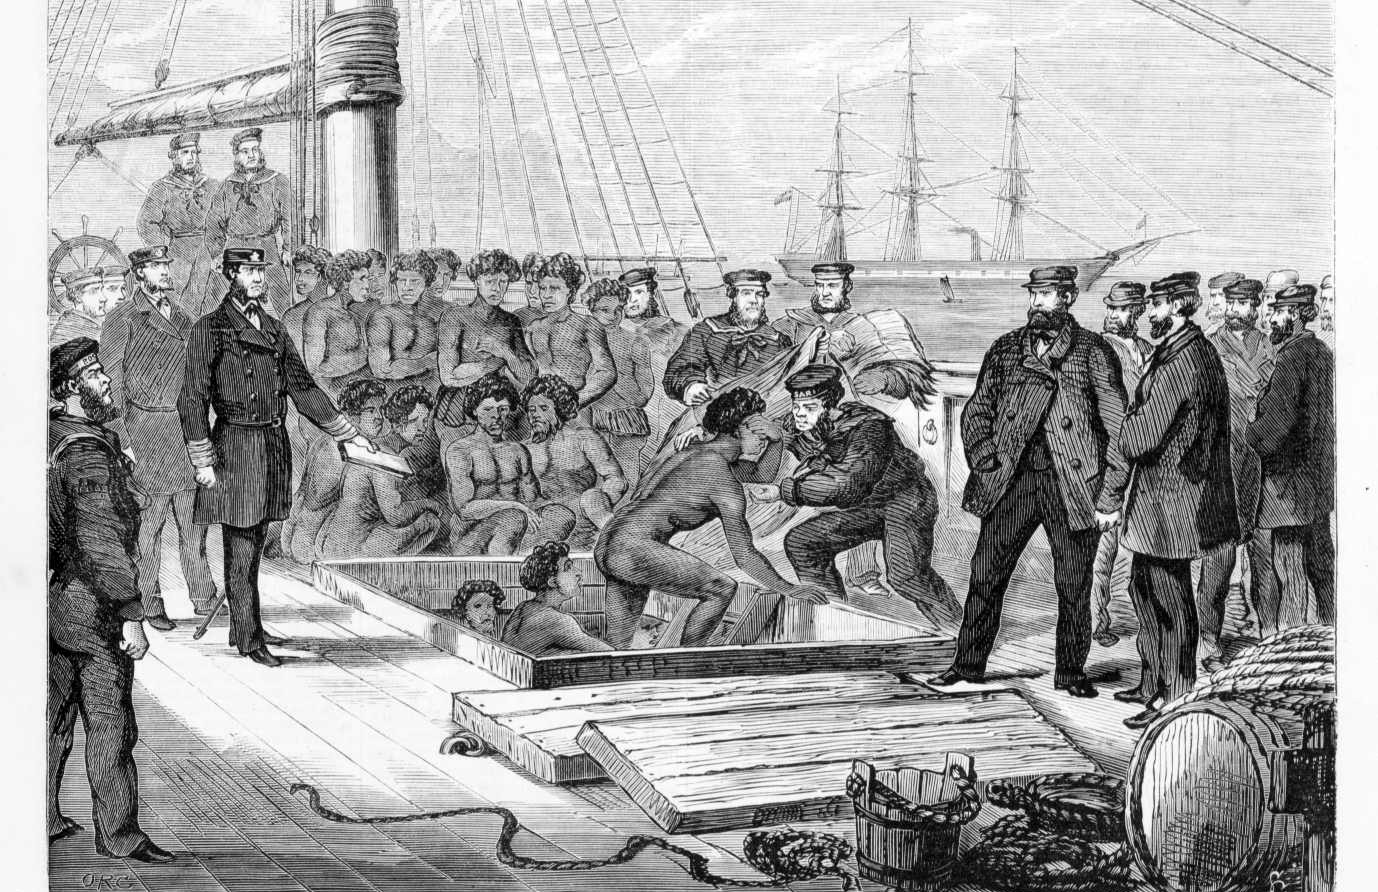 From the Caribbean to Queensland: re-examining Australia's 'blackbirding' past and its roots in the global slave trade